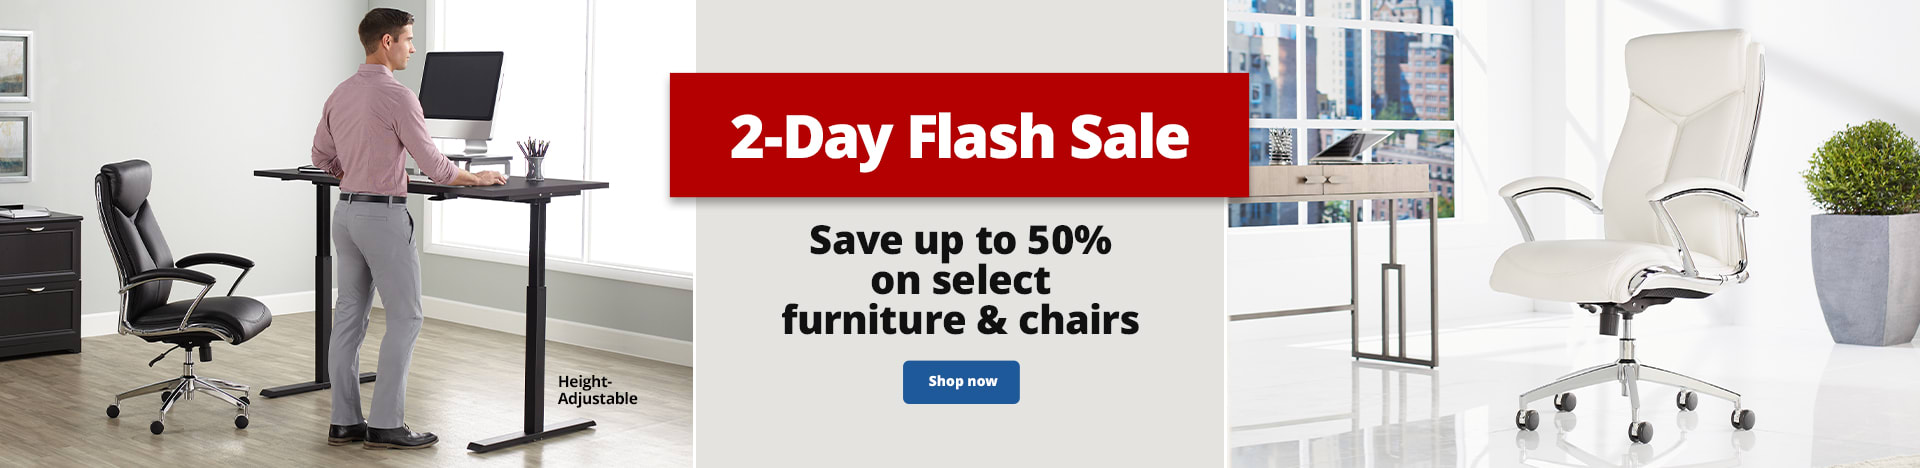 2-Day Flash Sale. Save up to 50% on select furniture & chairs